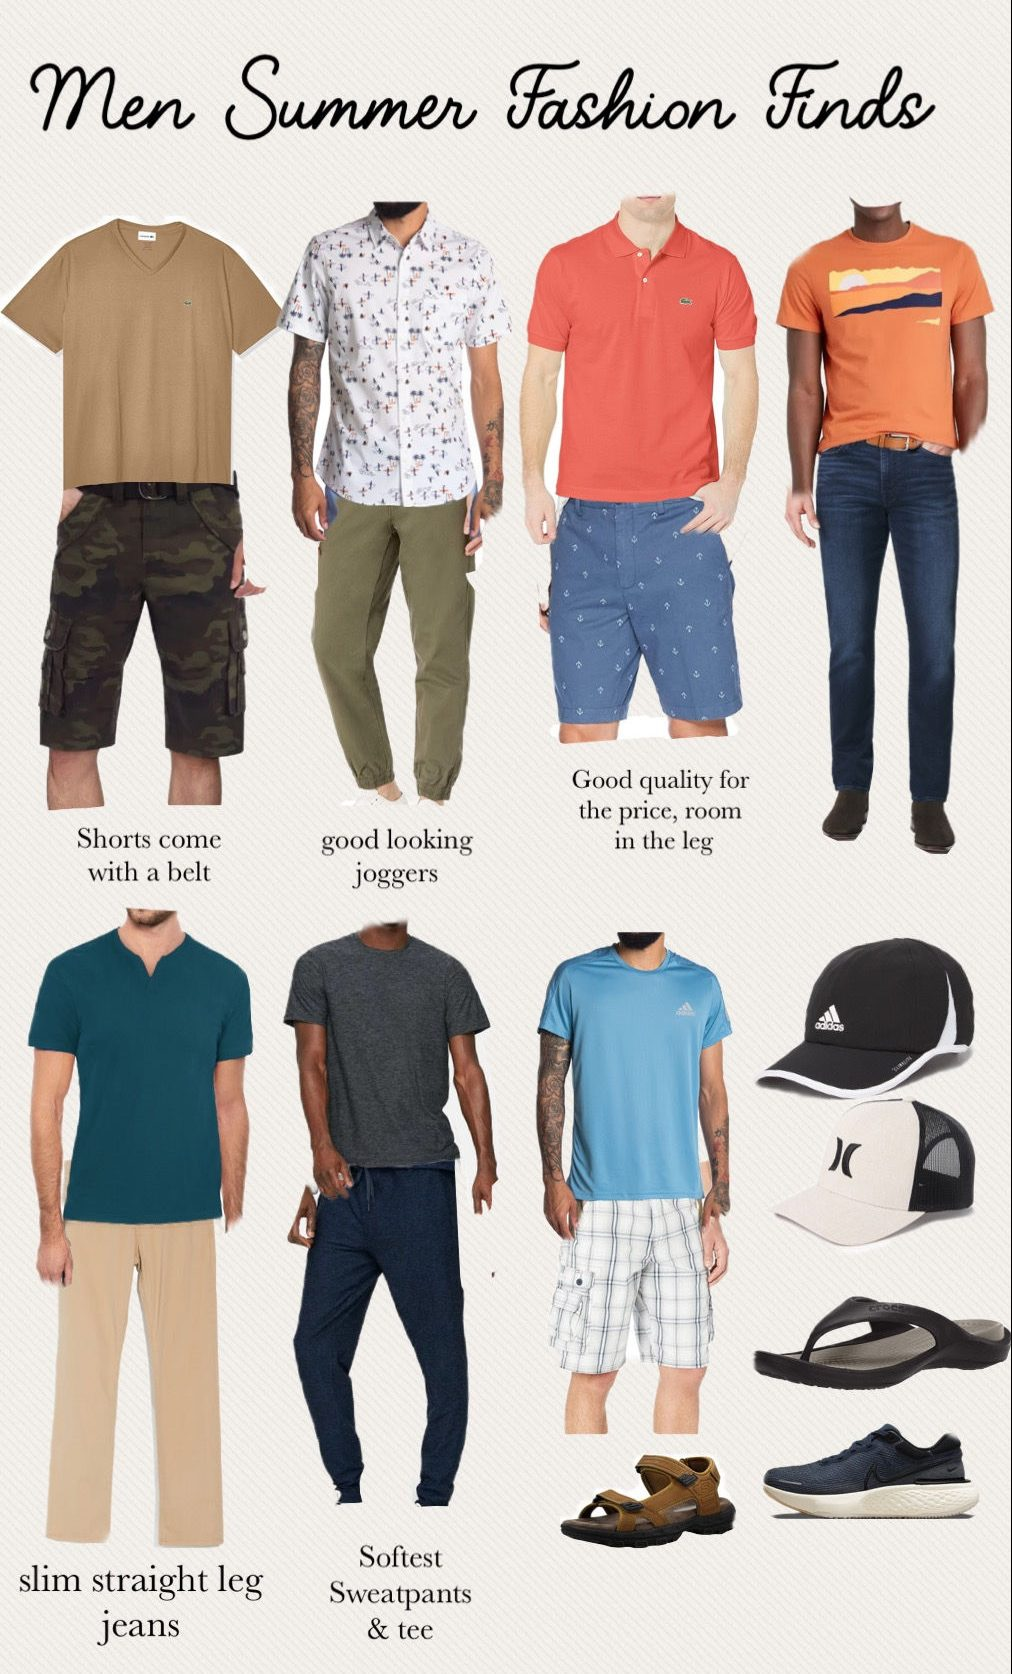 Affordable Men Summer Fashion Must Haves | Summer Fashion Trends by popular Maryland modest fashion blog, Dreaming Loud: collage image of mens t-shirts, CAMO shorts, green joggers, black and white button up shirt, chambray shorts, coral pink polo, orange shirt, half button blue shirt, tan cargo pants, grey t-shirt, jeans, light blue Adidas t-shirt, black and white plaid shorts, Adidas hat, Under Armor hat, black flip flops, blue sneakers, brown hiking sandals.